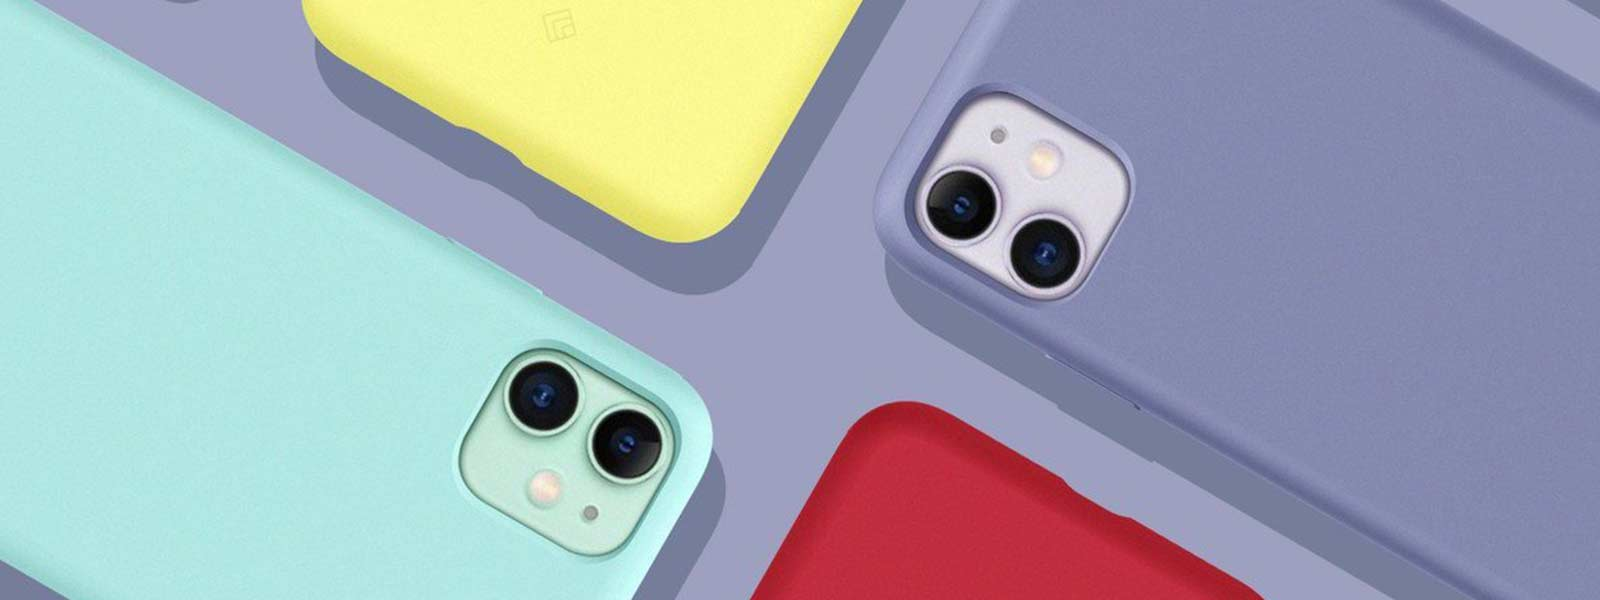 Best iPhone 11, 11 Pro, and 11 Pro Max Cases and Accessories